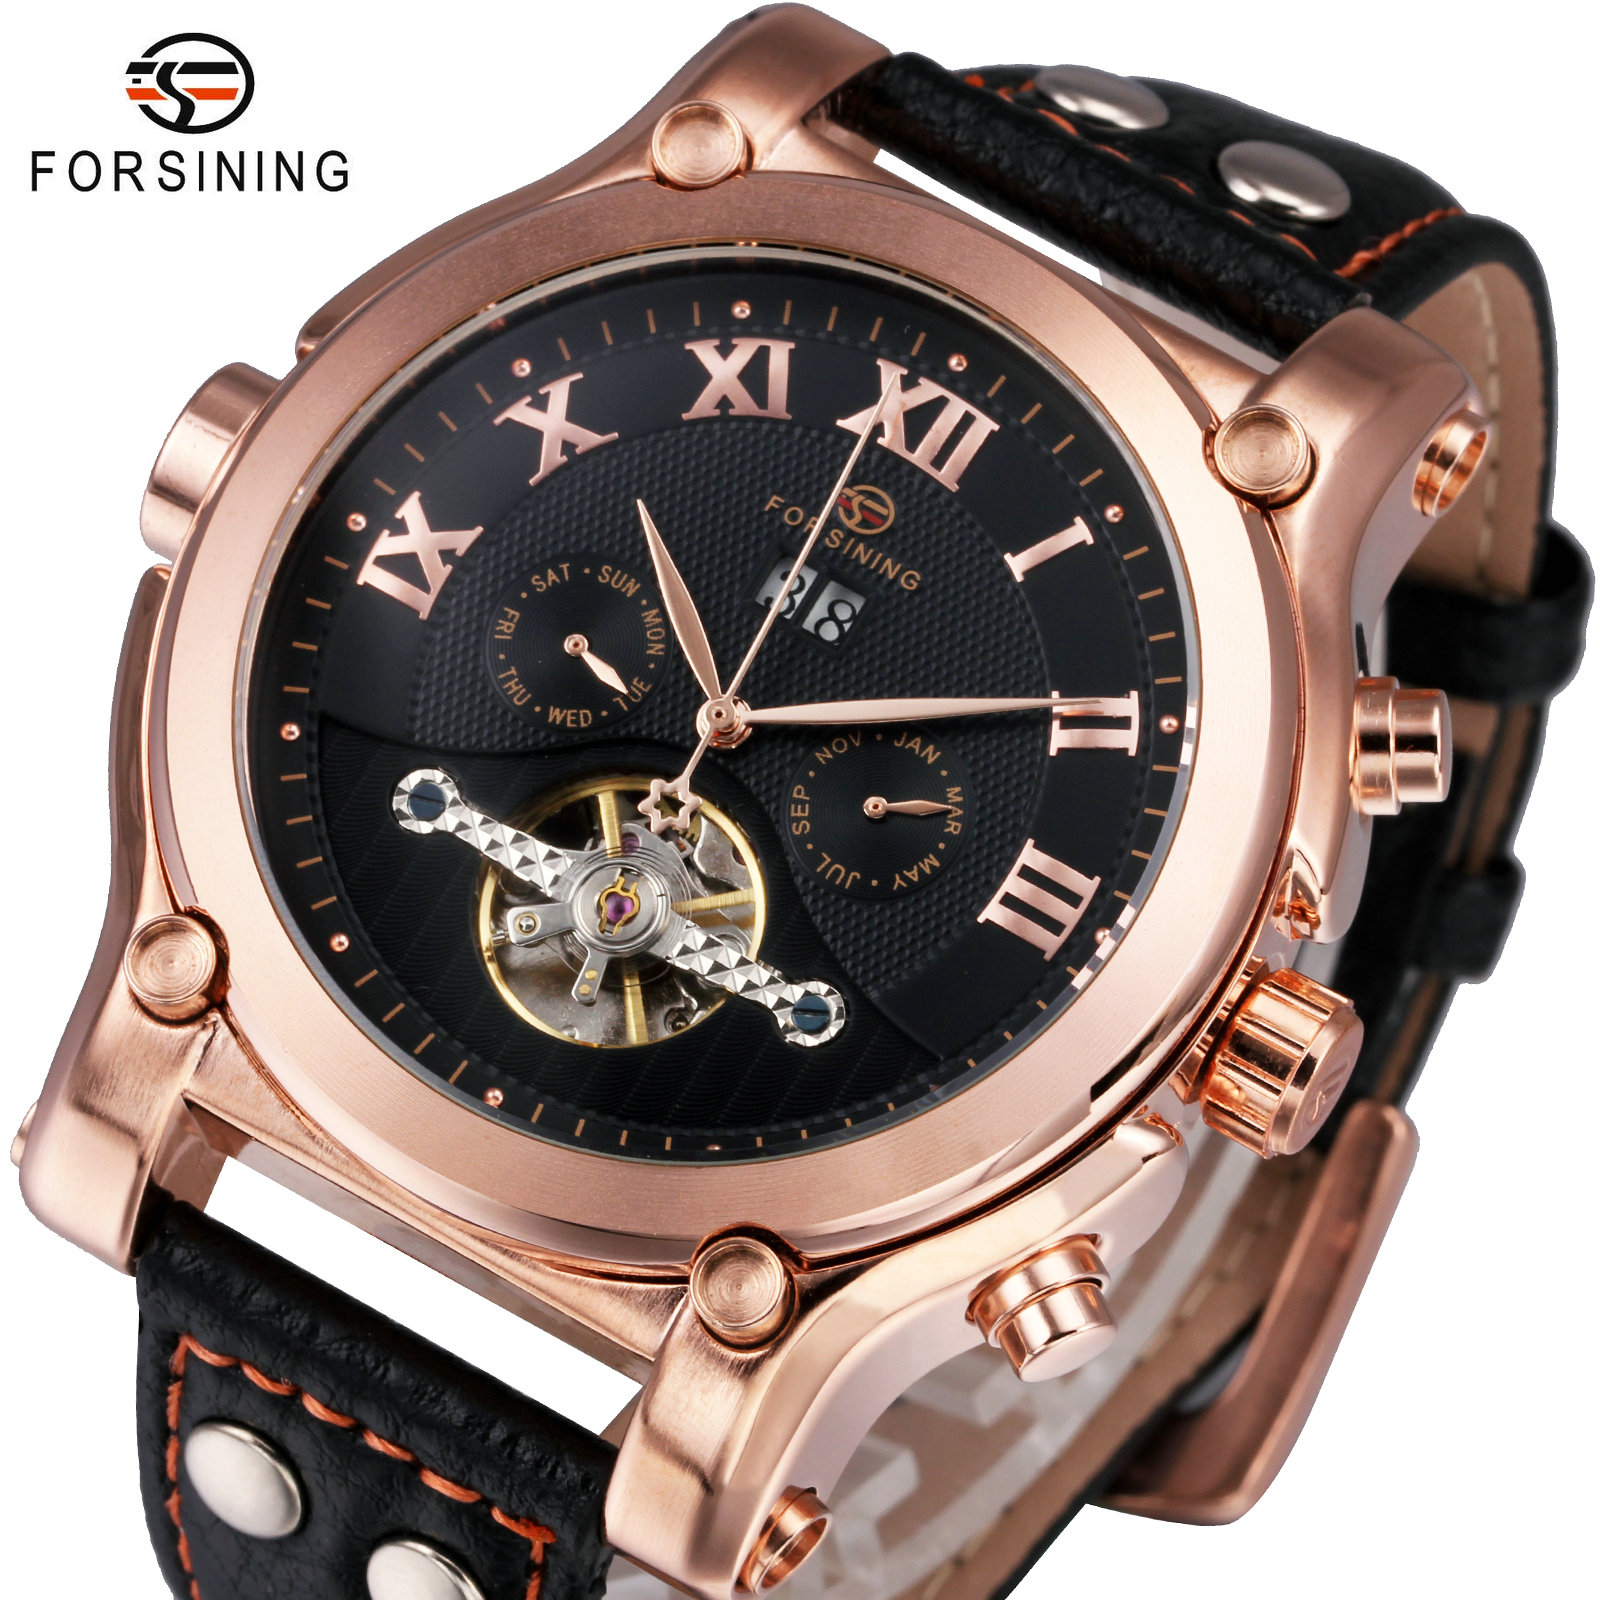 FORSINING Top Brand Luxury Tourbillon Watch Men Automatic Mechanical Roman Numerals Watches Royal Rose Golden Case Leather Strap все цены